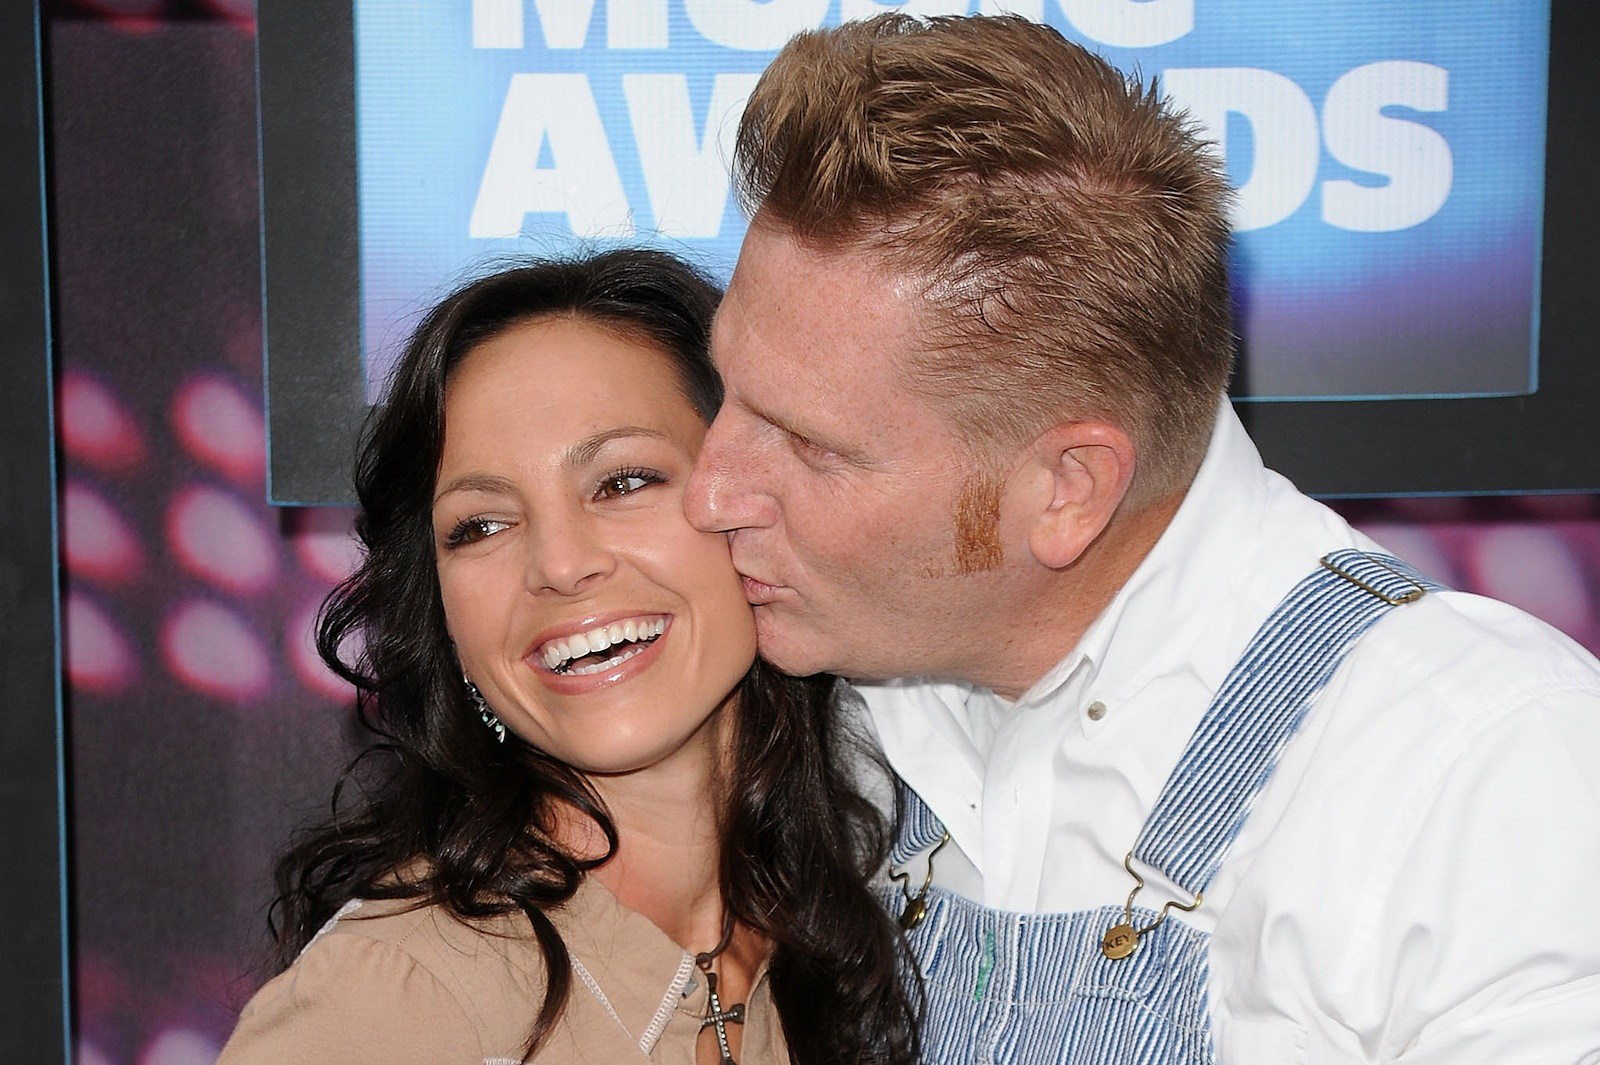 Joey + Rory Announce \'Hymns That Are Important to Us\' Album